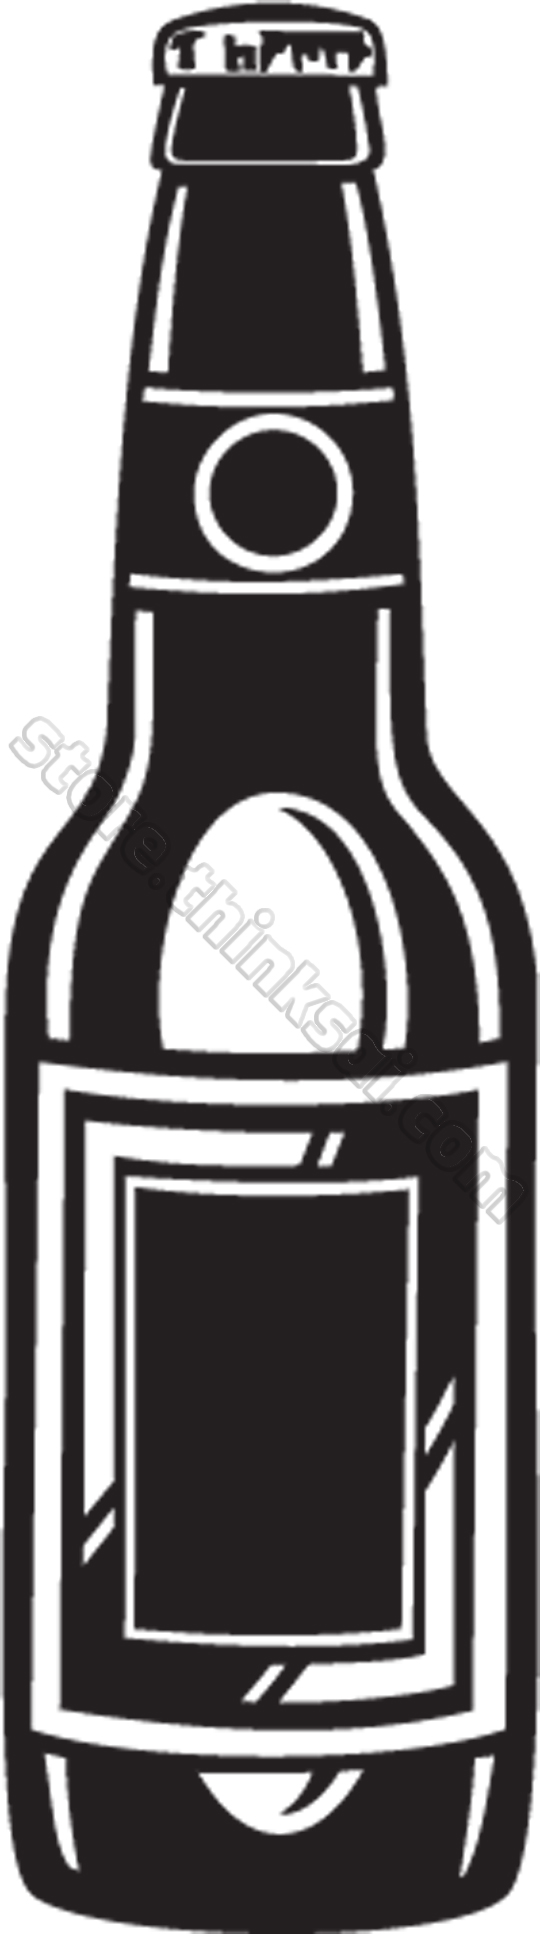 Clip Art Beer Bottle Clip Art beer bottle black and white clipart kid clip art sai store art